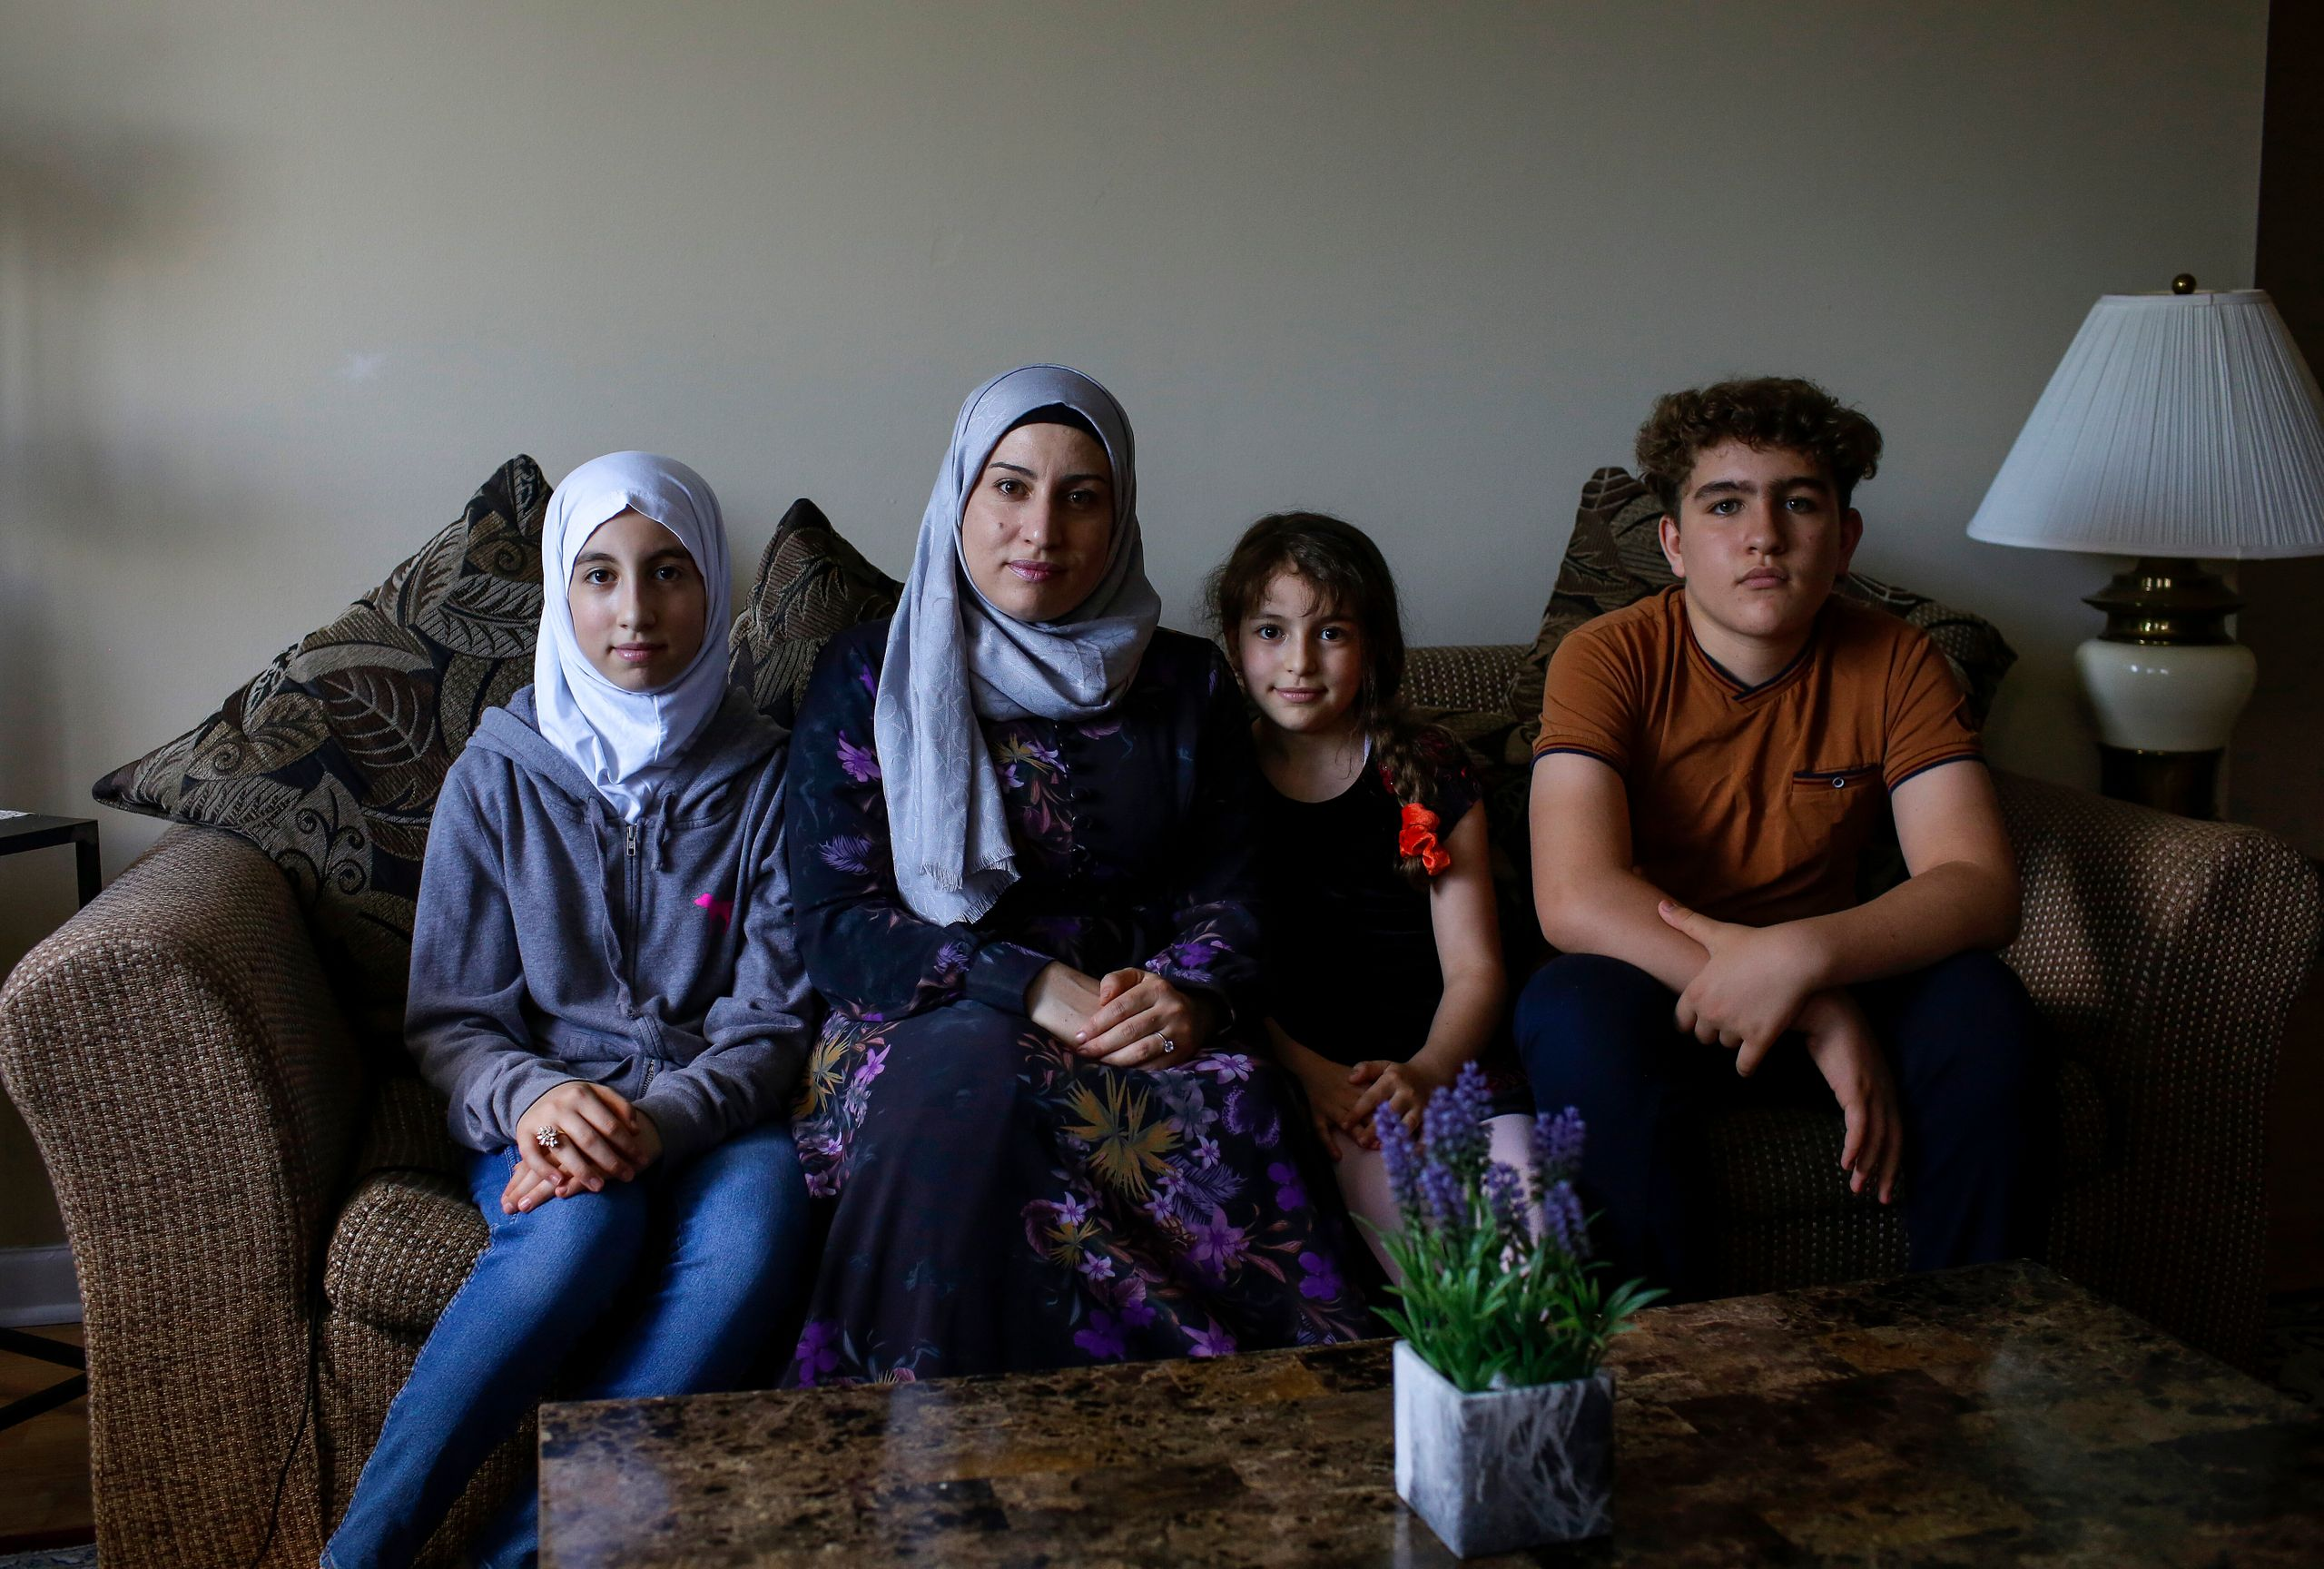 Mohamed Almadani (far right) is a faster reader in English, and often reads aloud for his mother, Nawar Almadani (second from